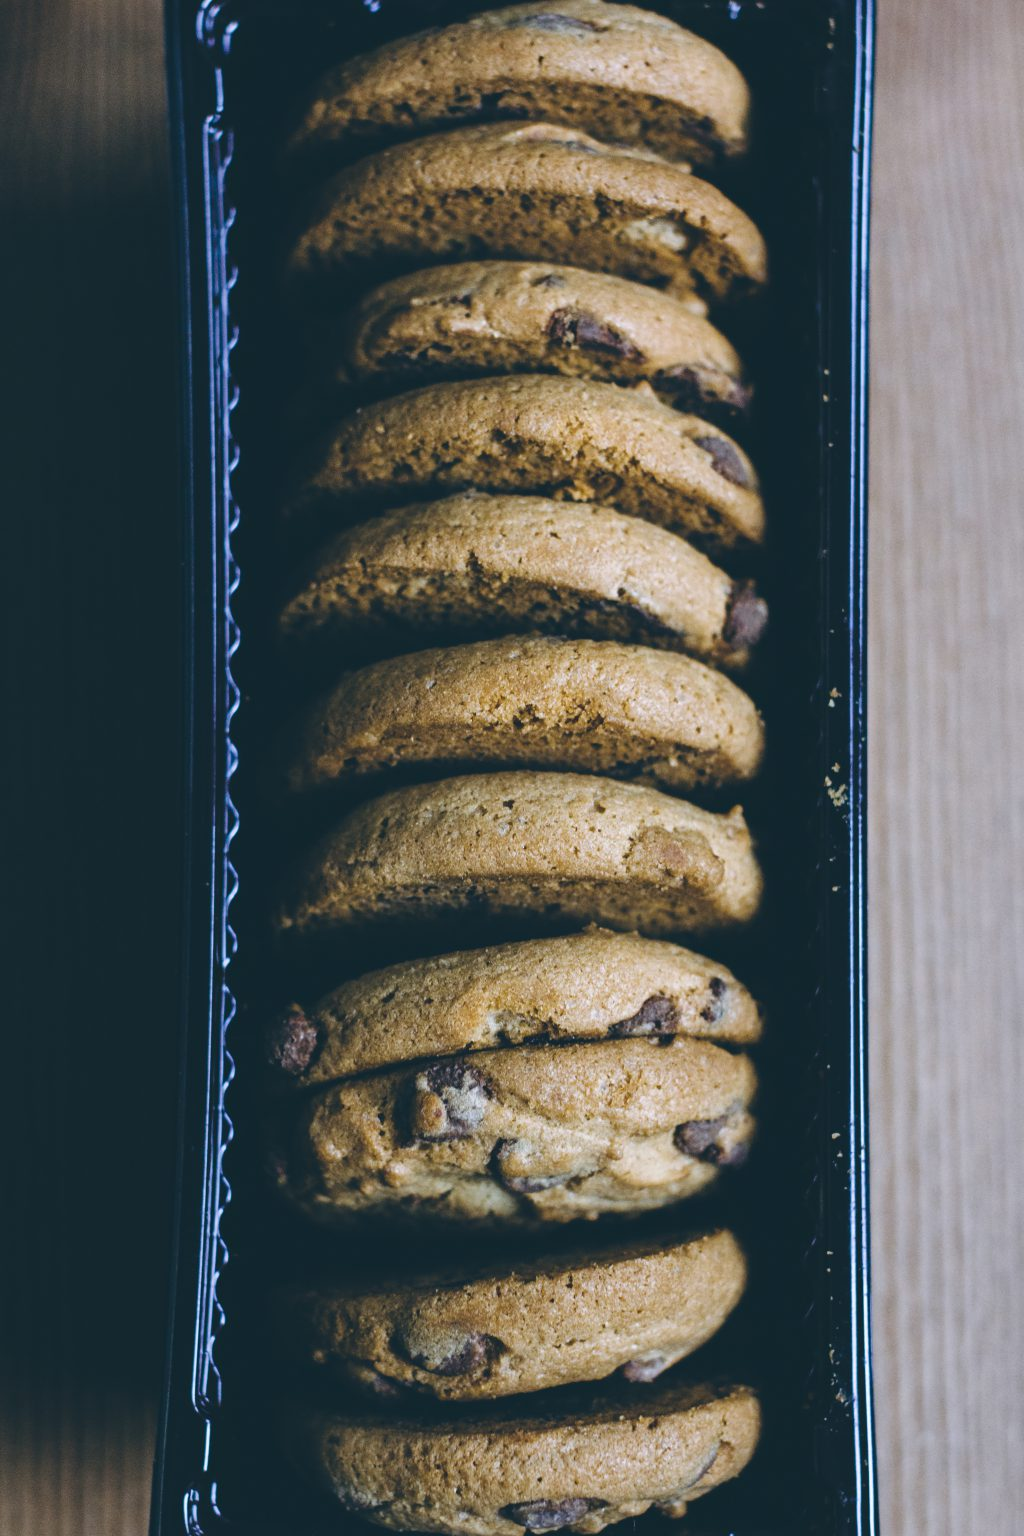 Chocolate chip cookies in a box 2 - free stock photo